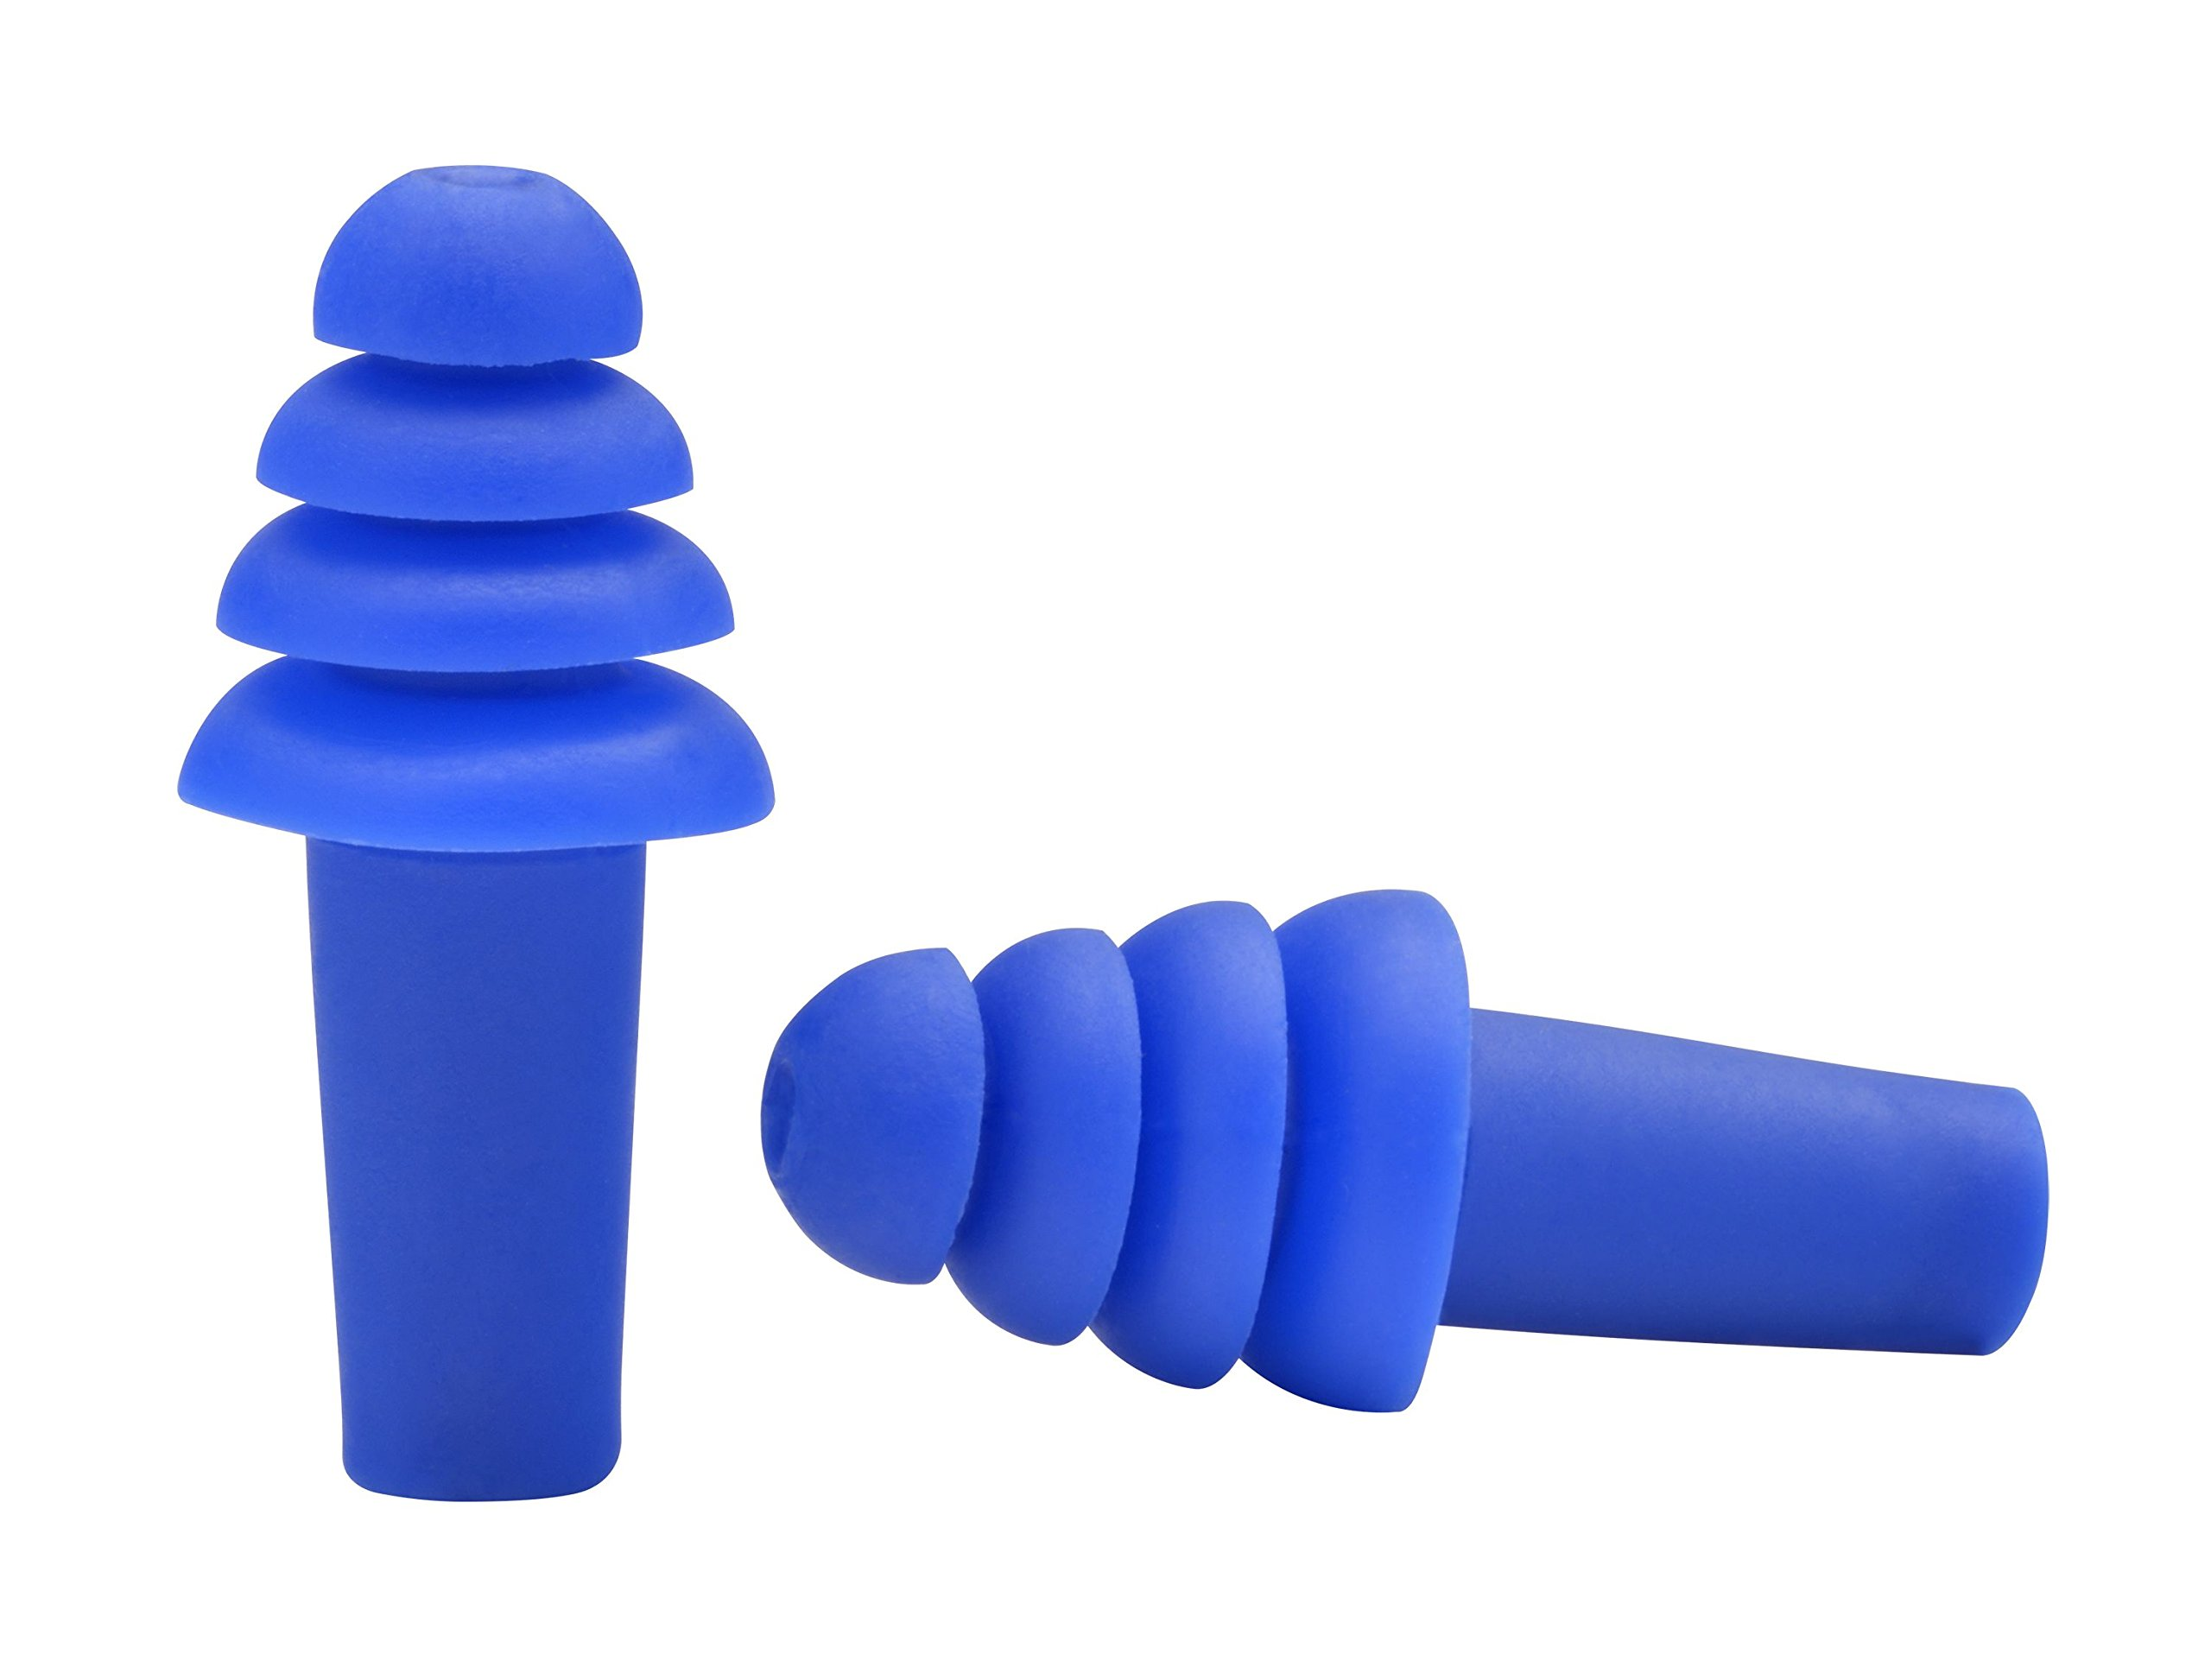 Elvex EP-401 Quattro Ear Plugs, Blue (Pack of 100) by Elvex (Image #1)